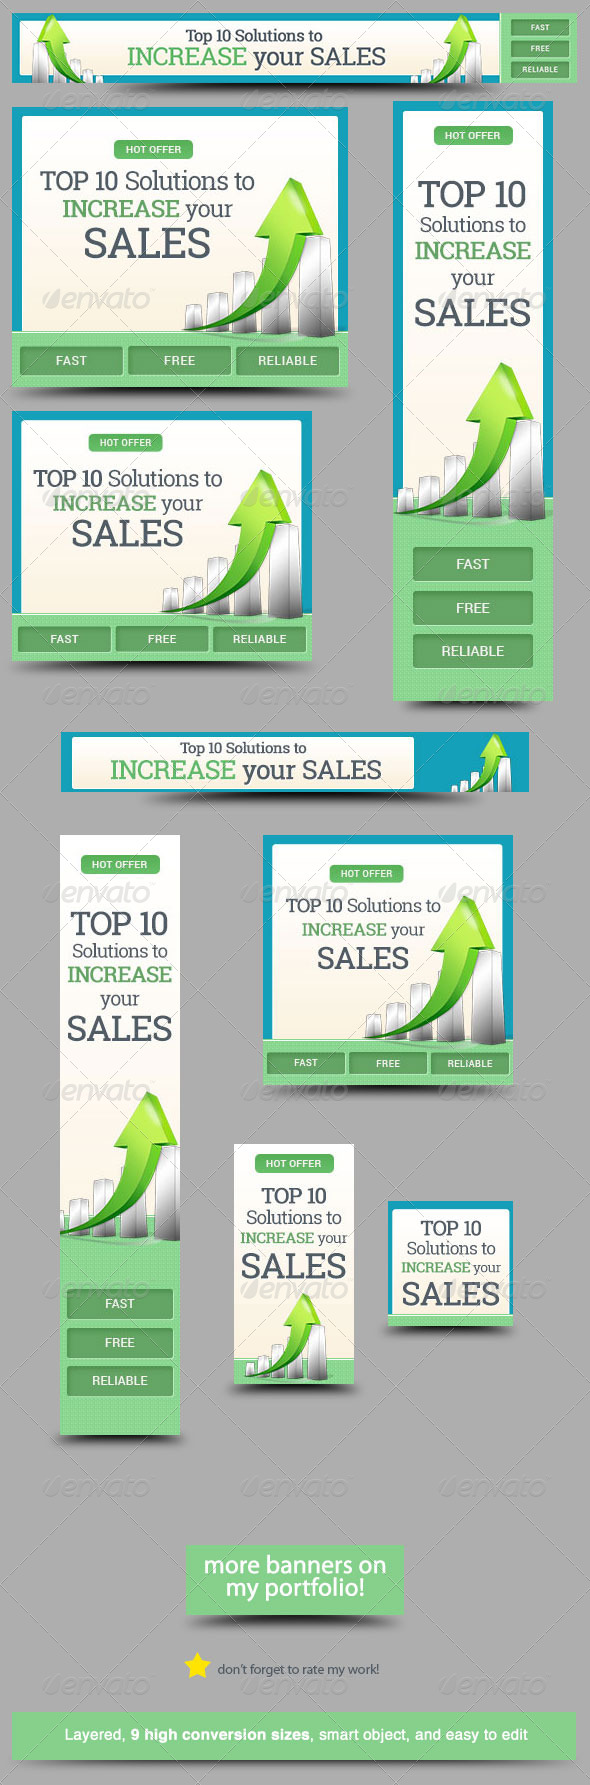 Corporate Web Banner Design Template 25 by admiral_adictus ...